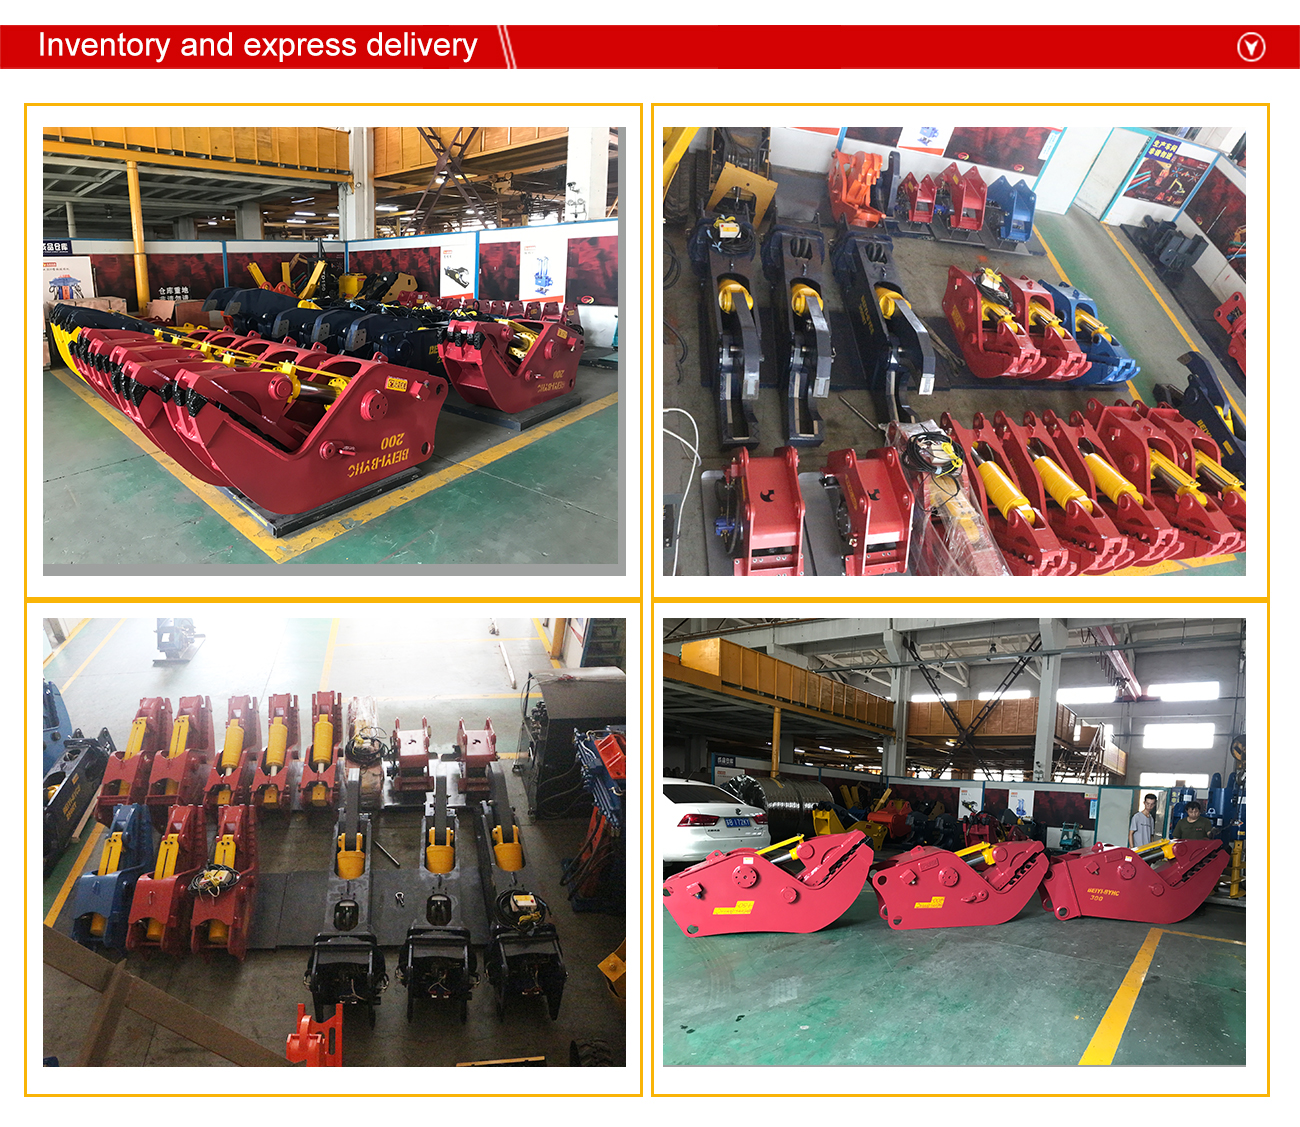 concrete demolition tools hydraulic demolition shear crusher and concrete crusher for excavator